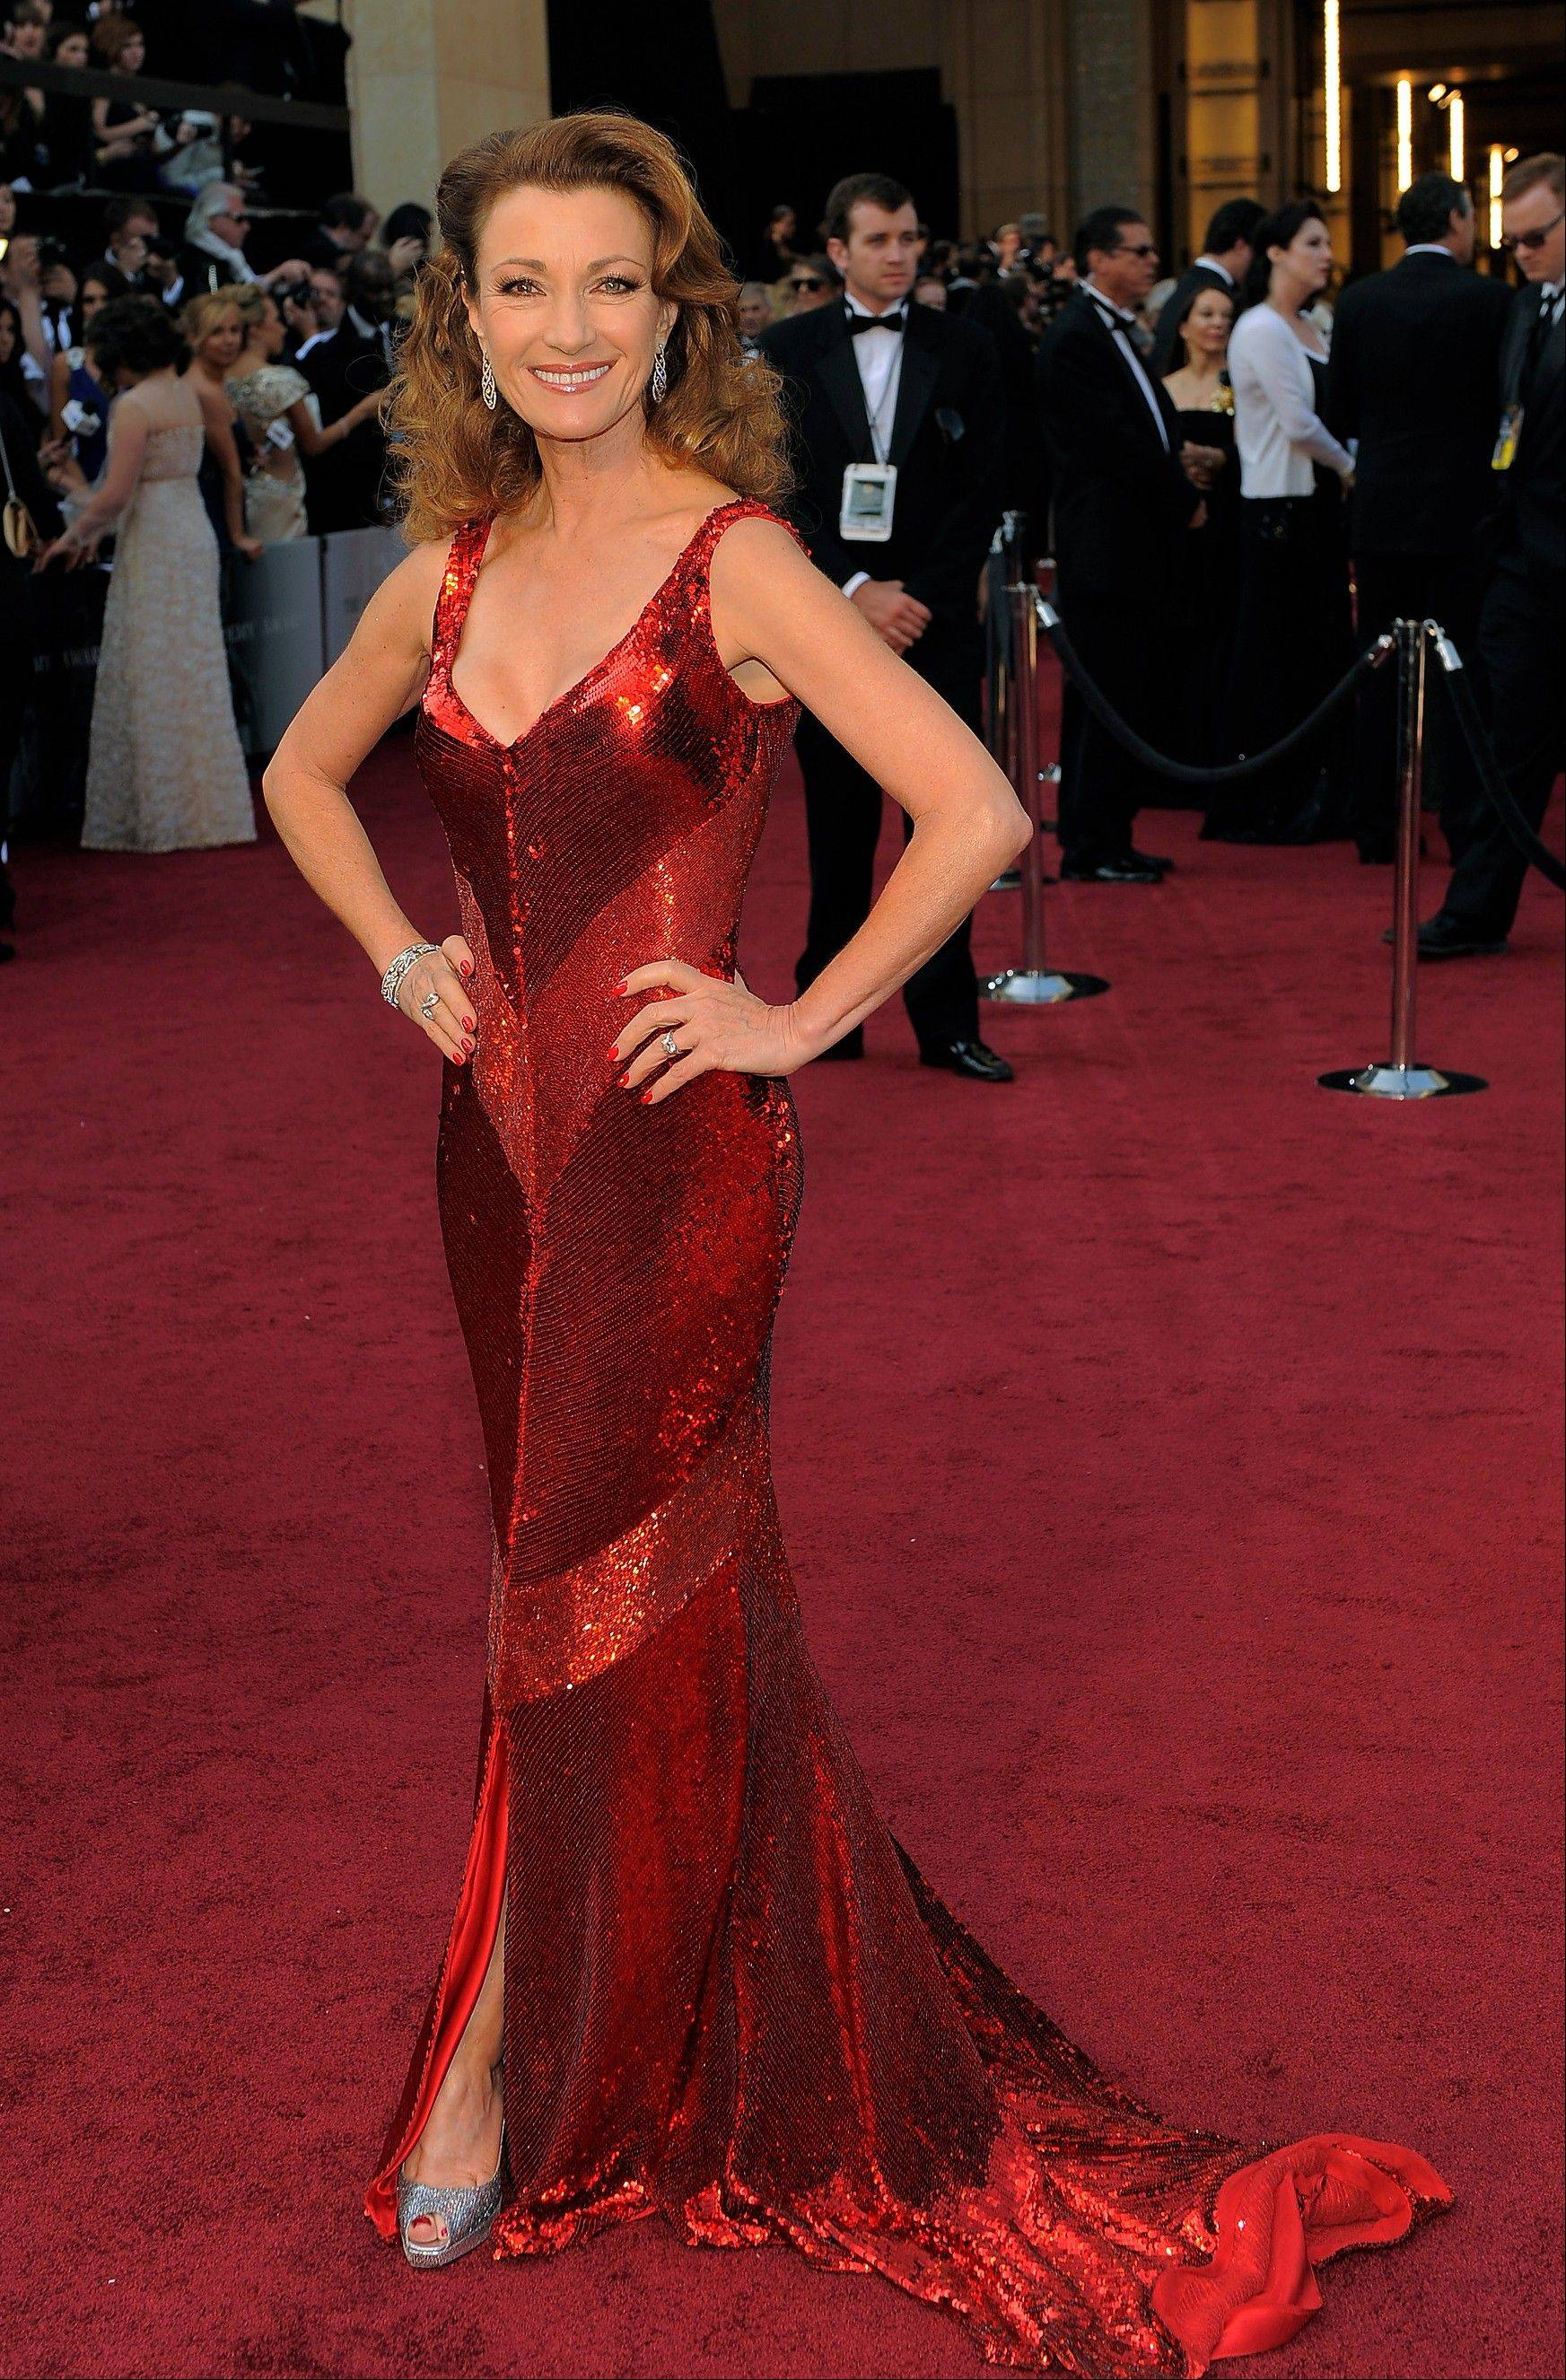 Jane Seymour dazzled in red.